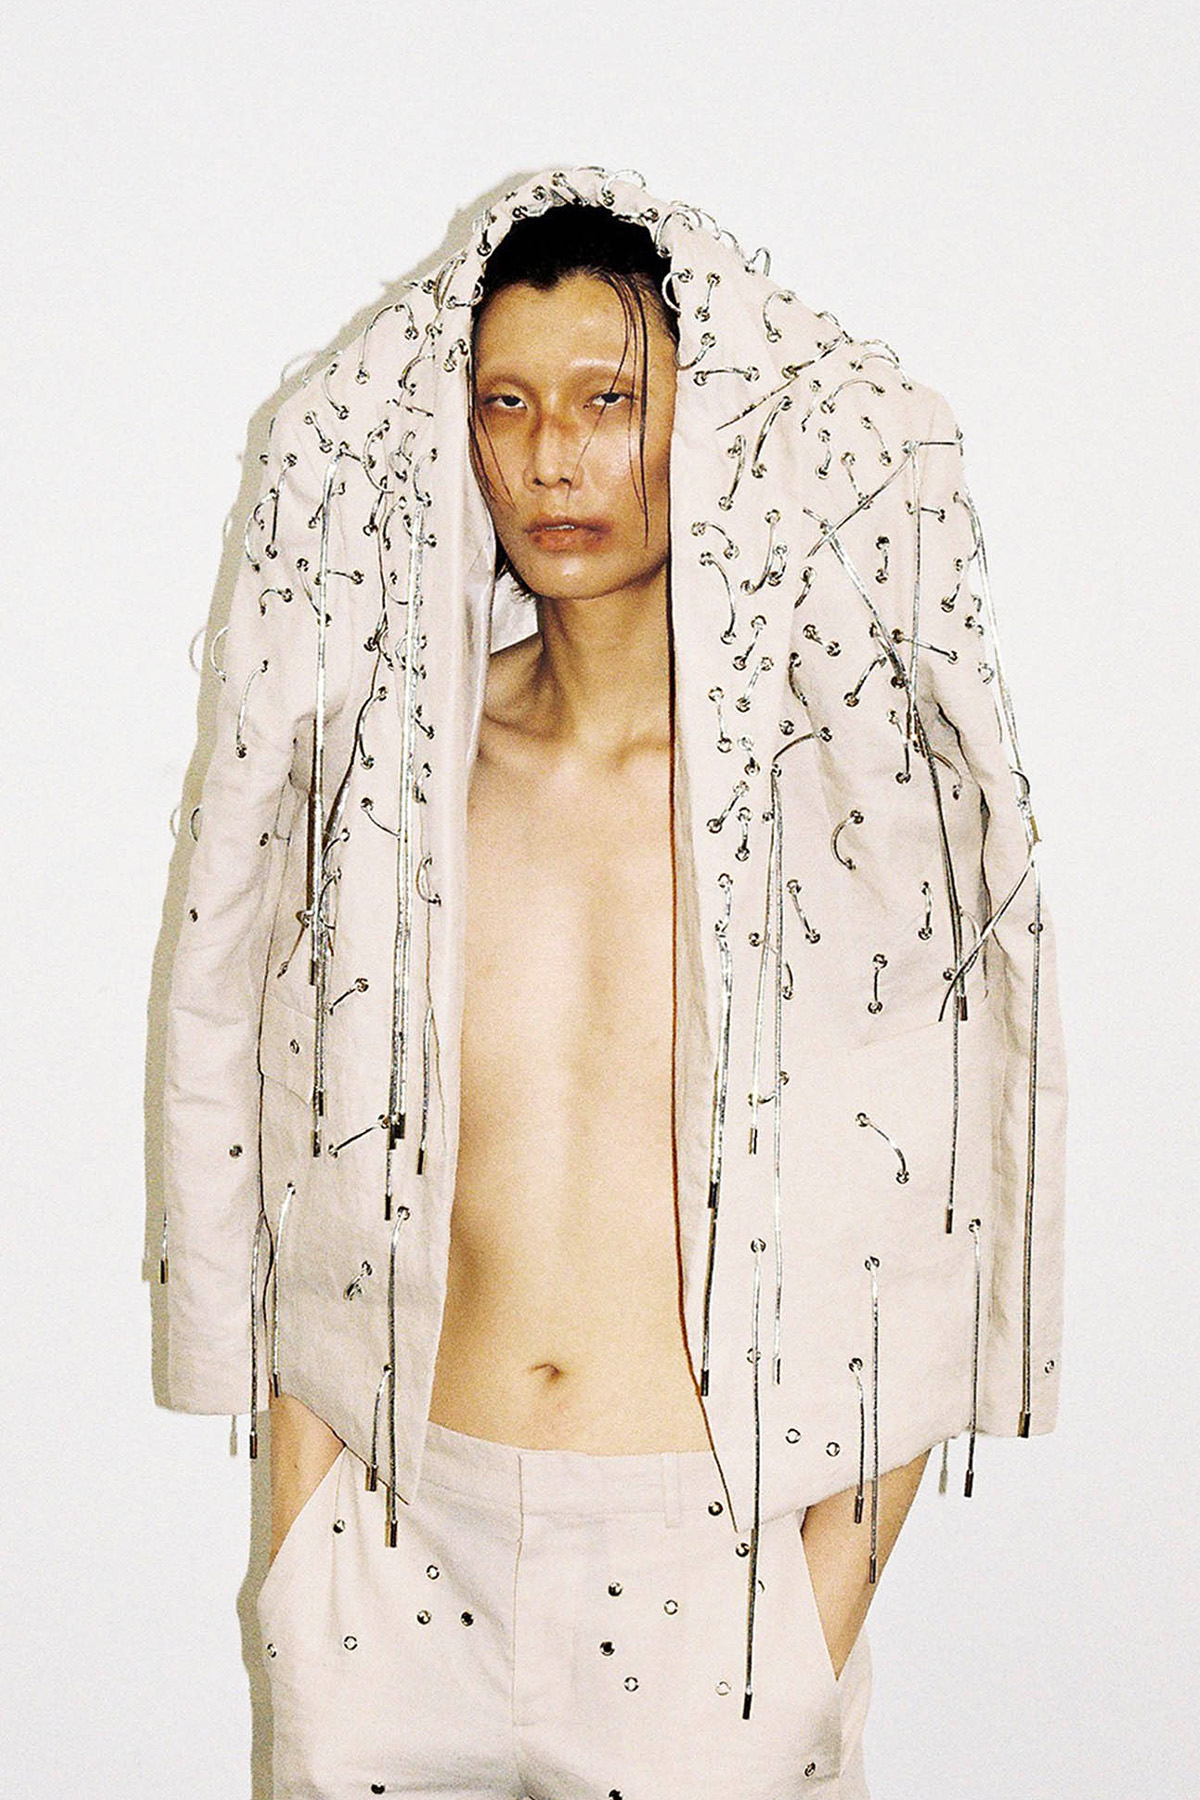 A model wearing a full look from Seungmin Koh's RCA MA graduate collection